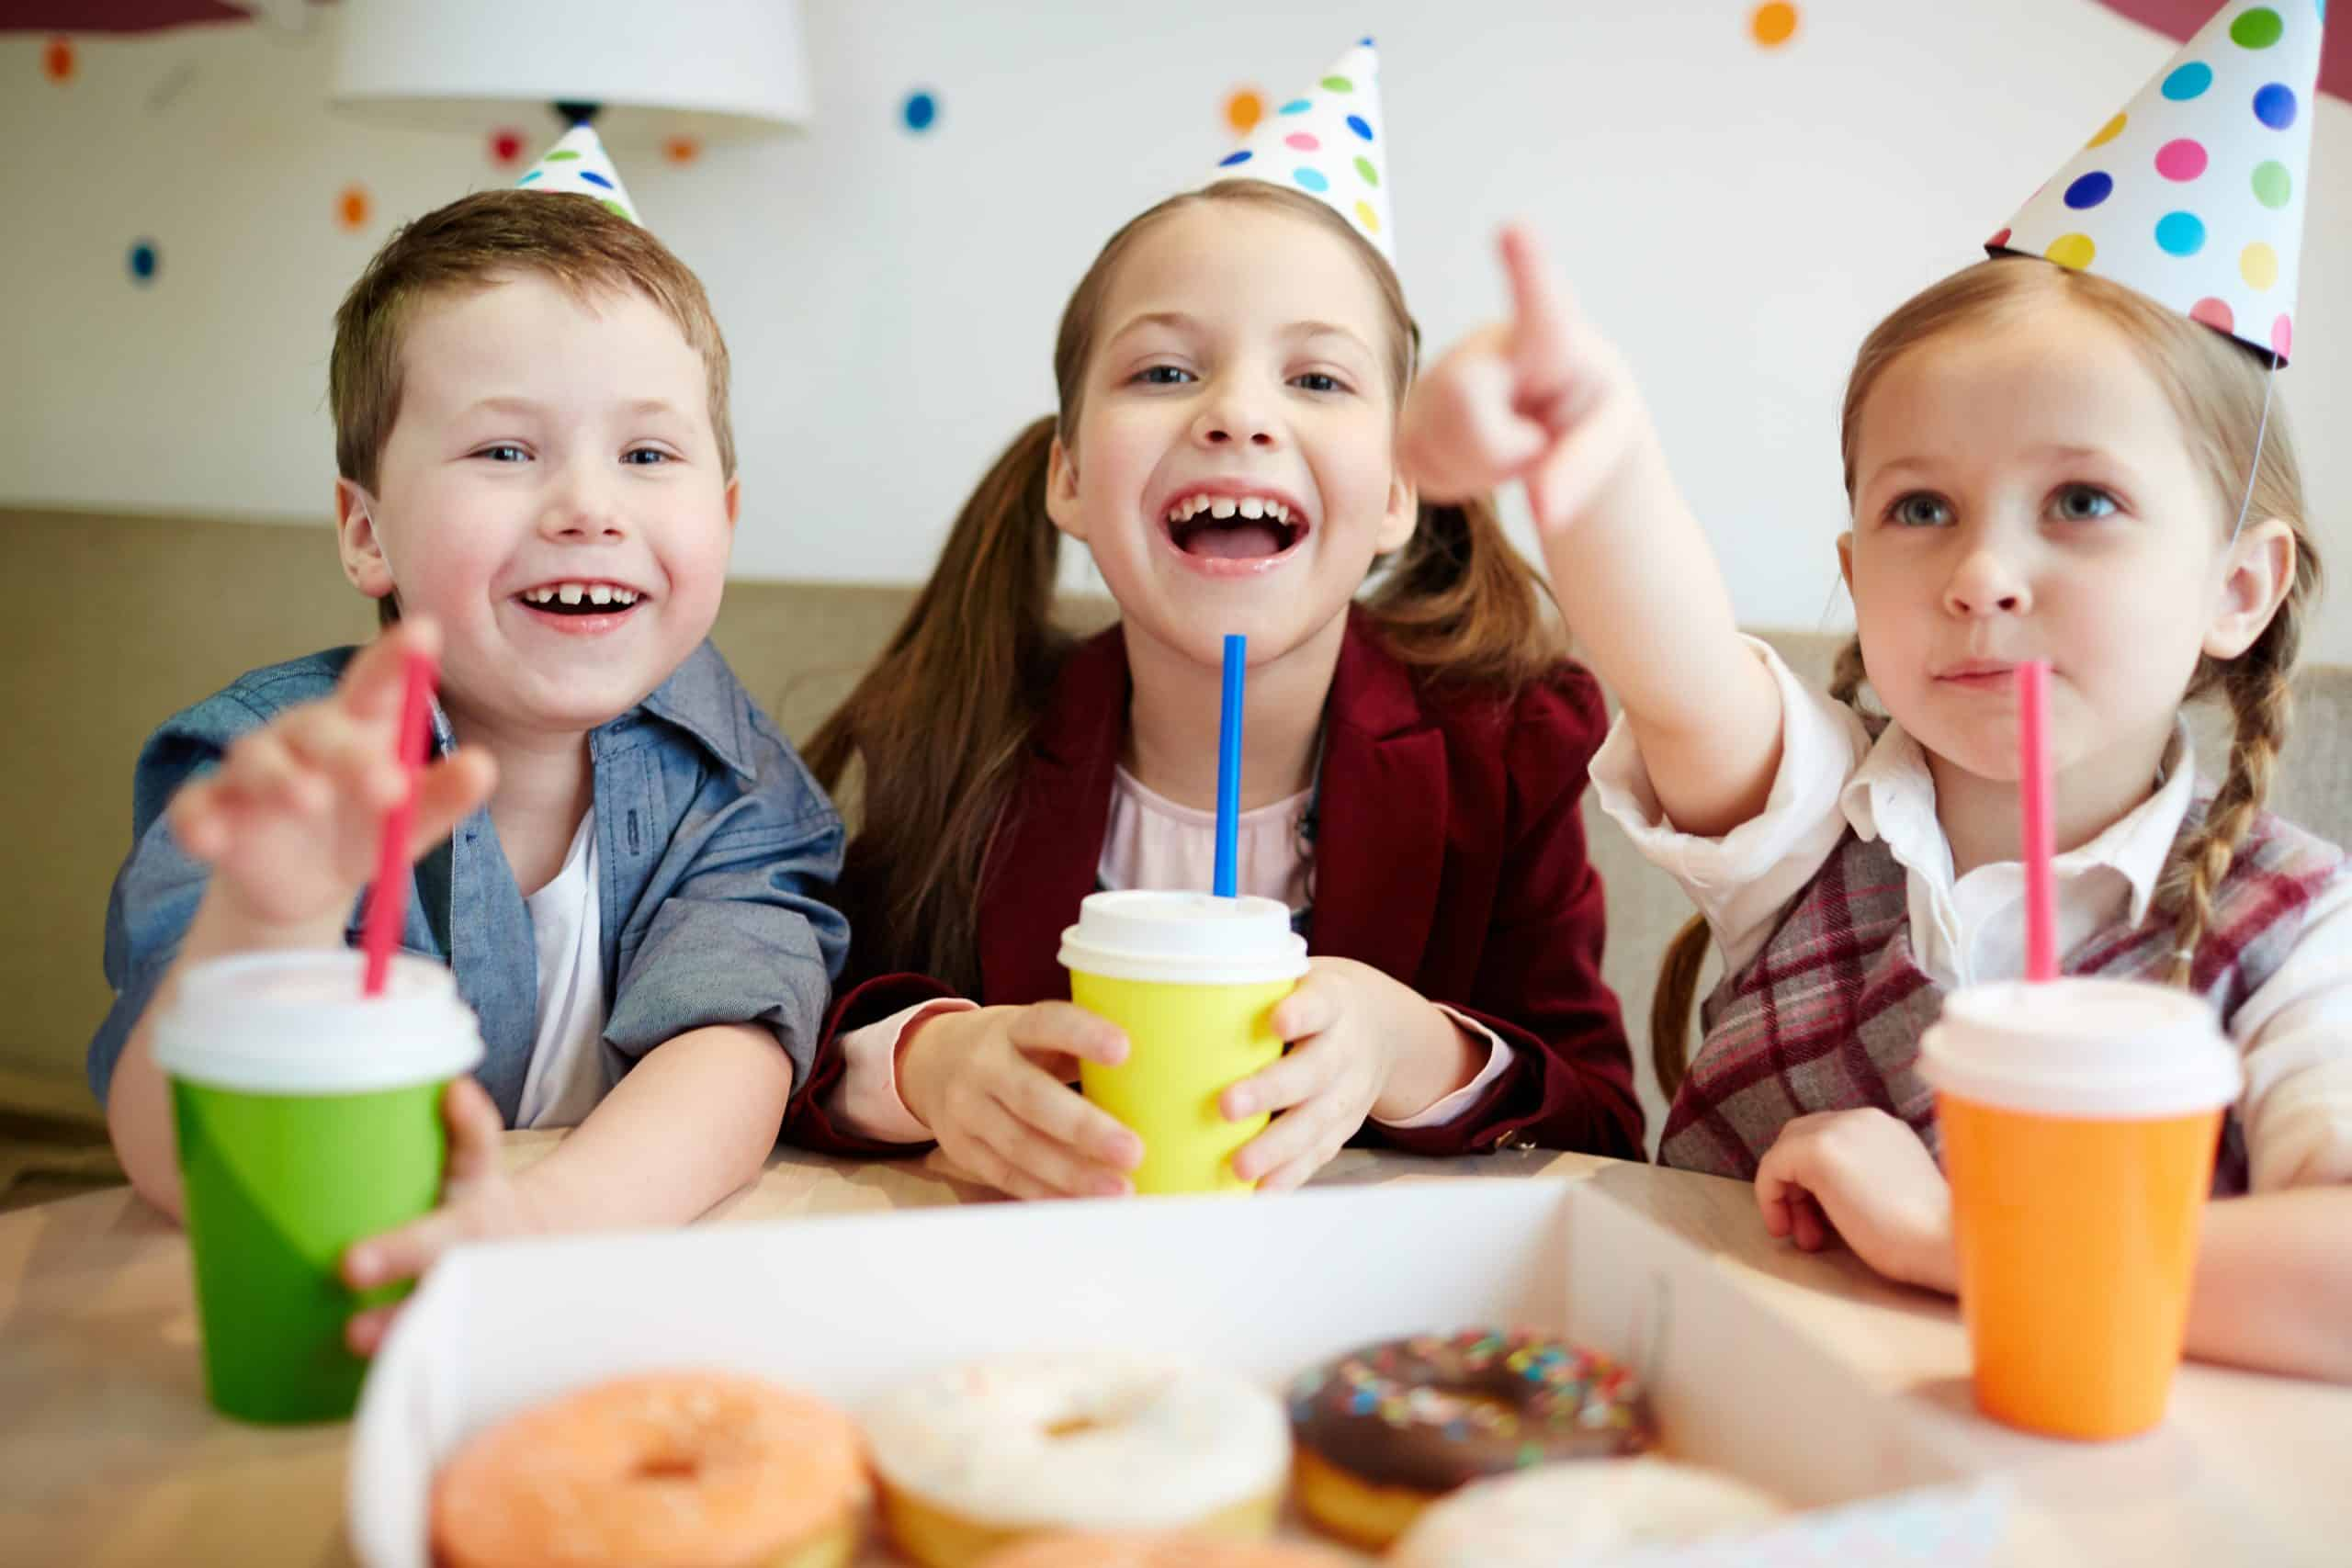 Ecstatic kids with drinks enjoying time in cafetria eat less sugar